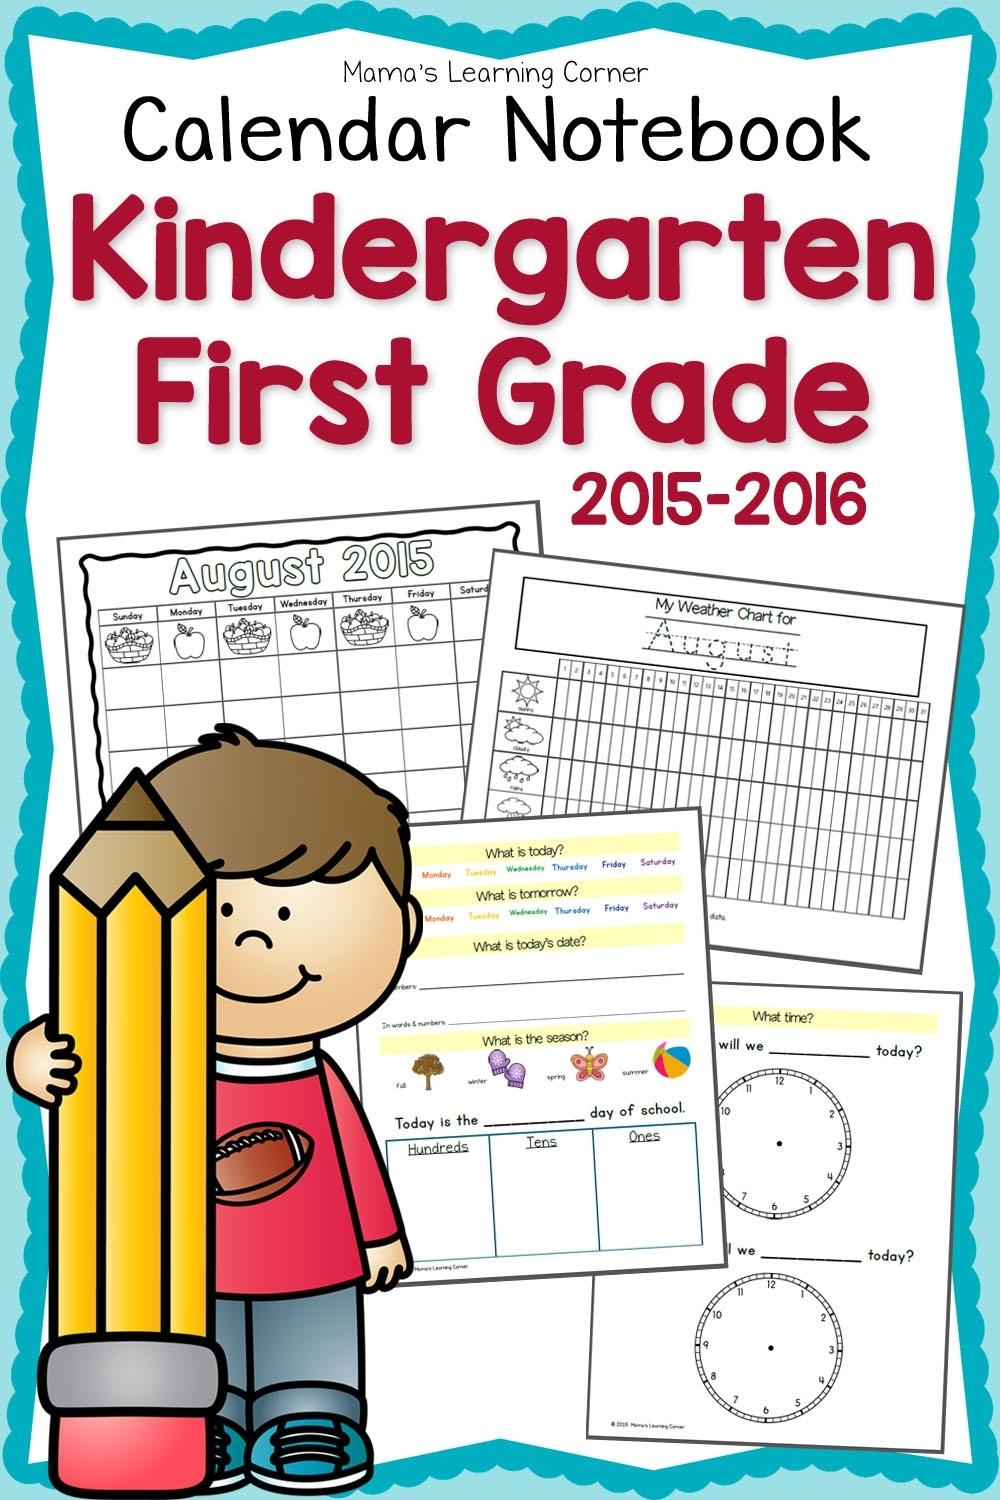 Free Printable First Grade Calendar Notebook | Money Saving